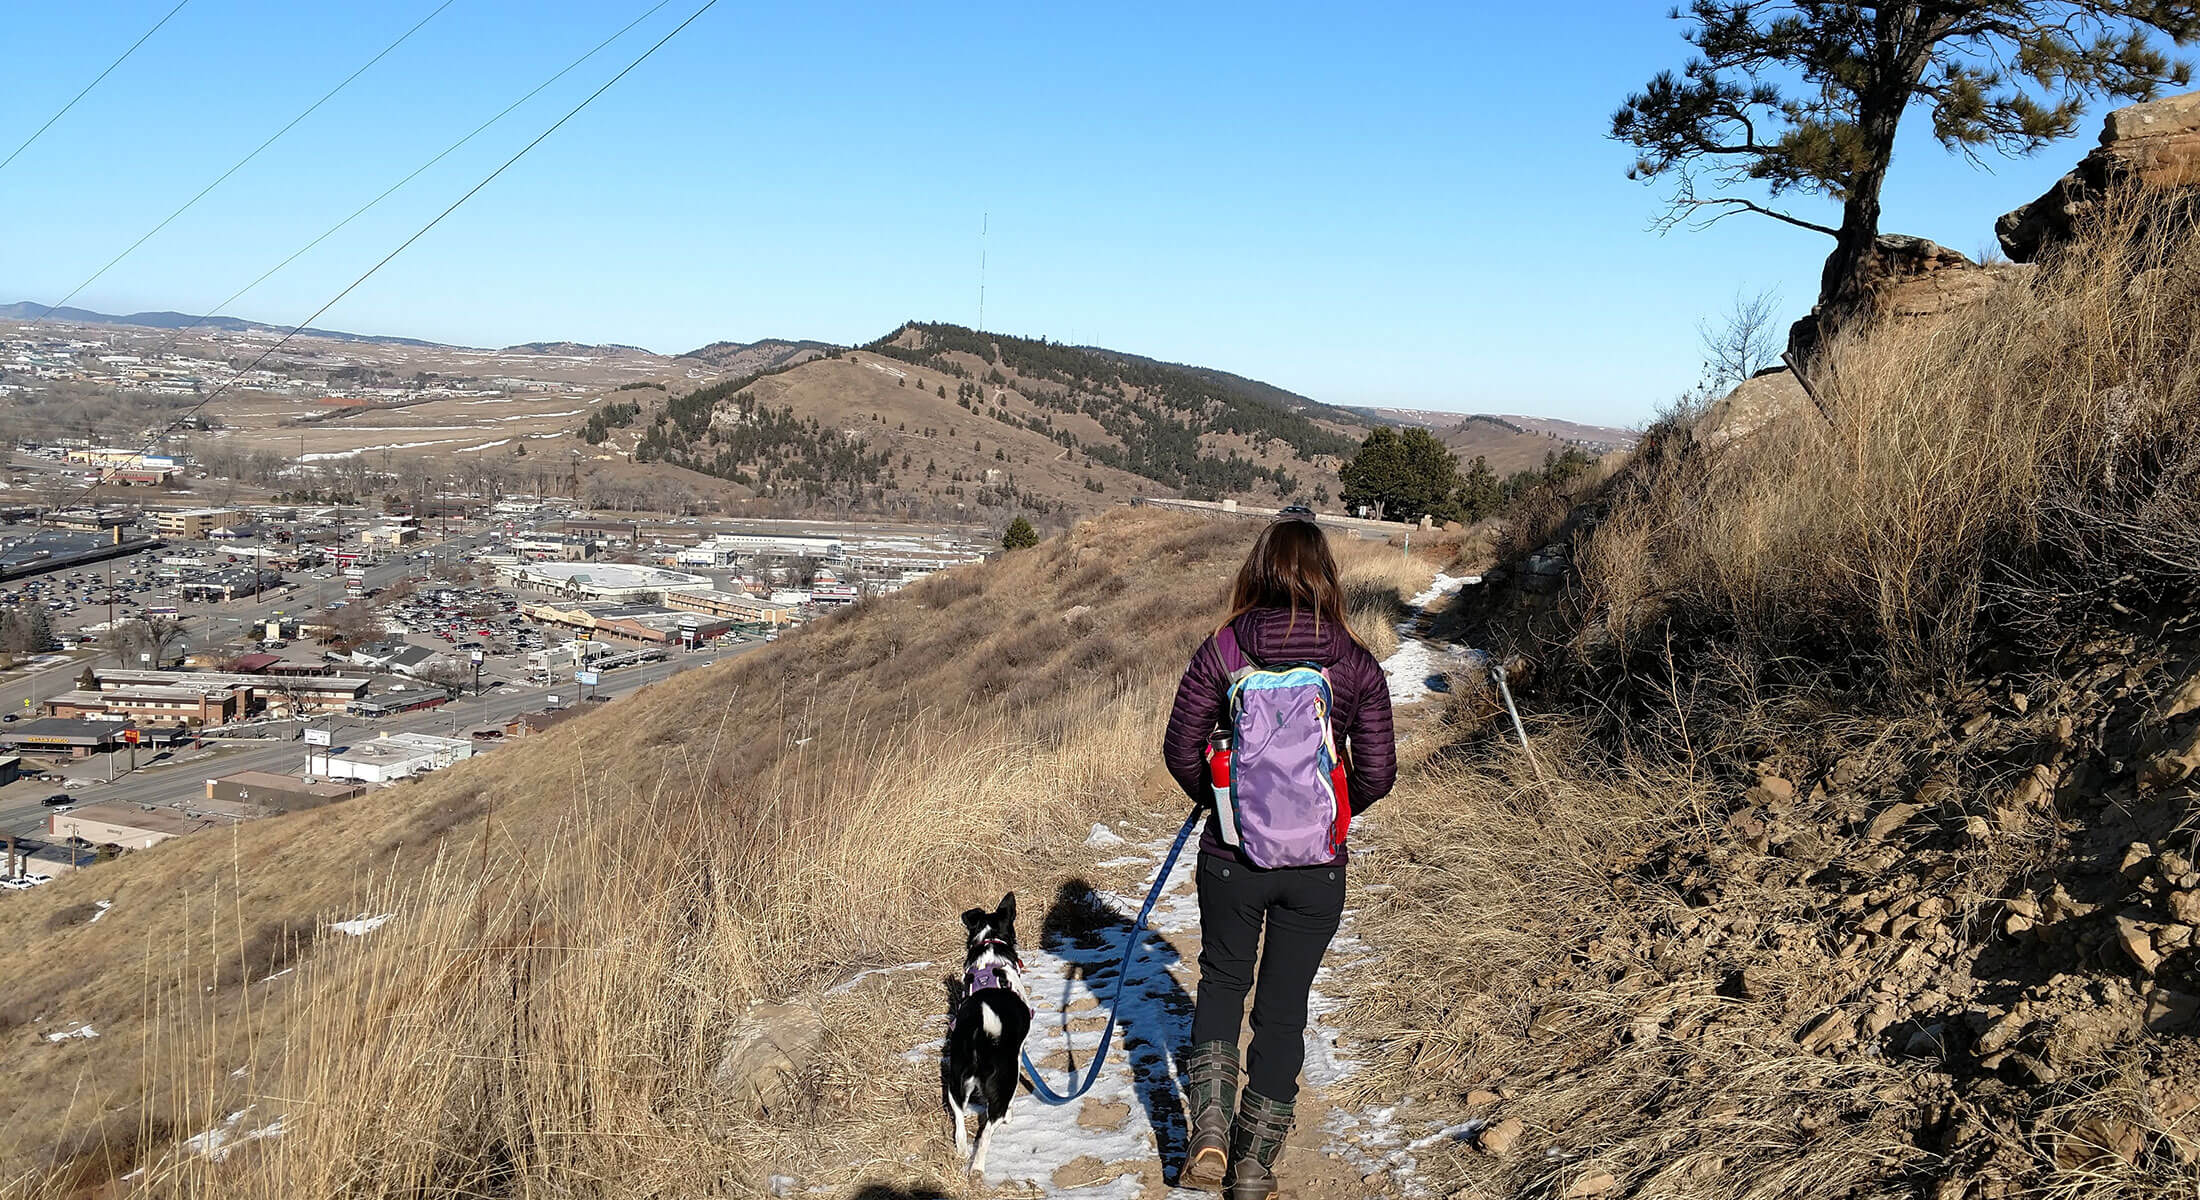 Hiking on the Skyline Wilderness Area Trails